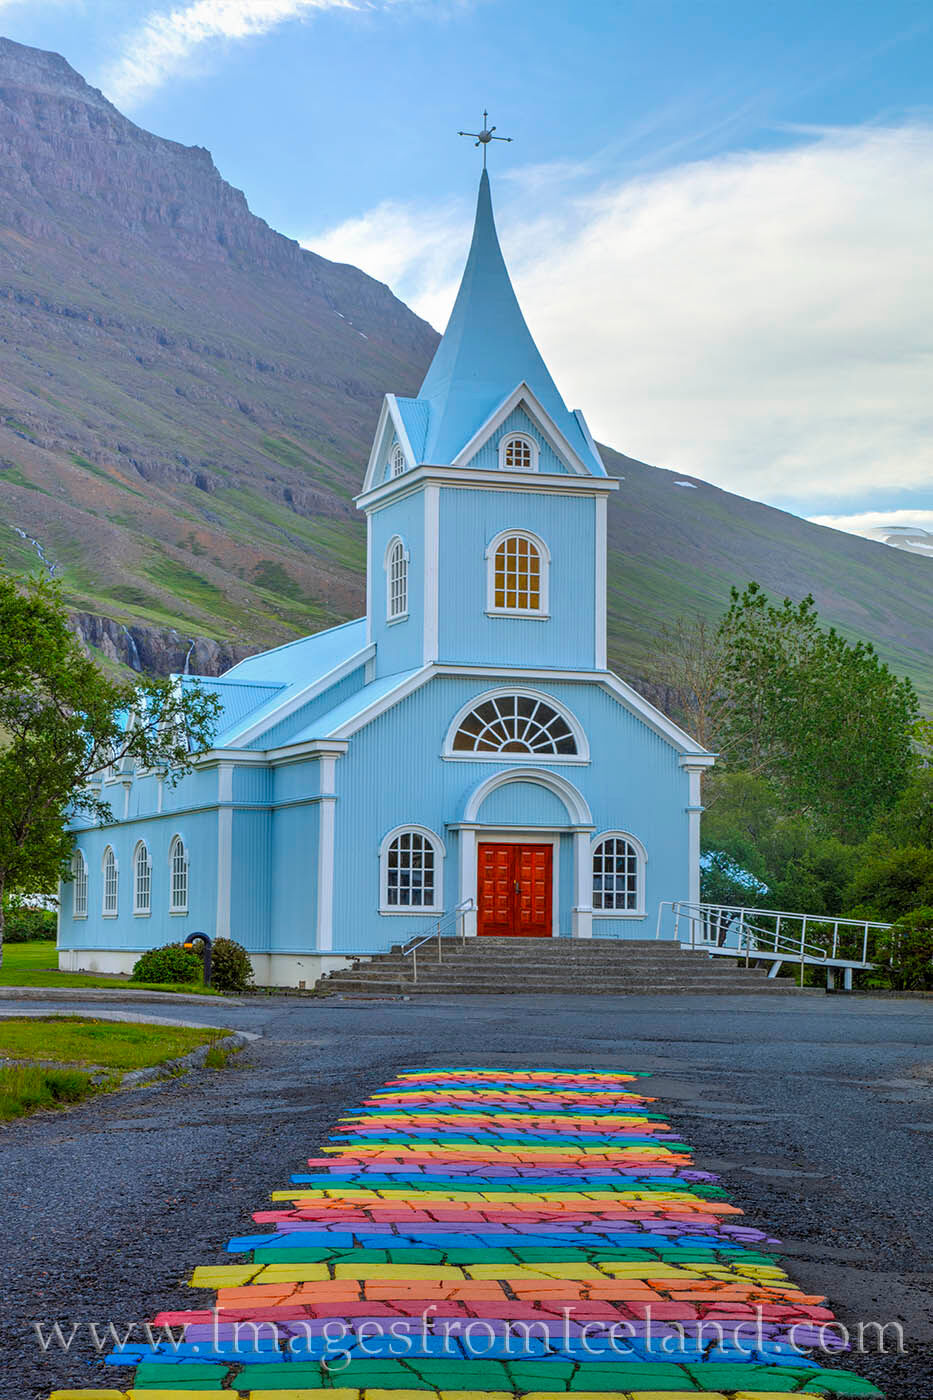 The little Blue Church on Rainbow Street in Seydisfjordur represents acceptance for everyone in a beautiful setting. This town...